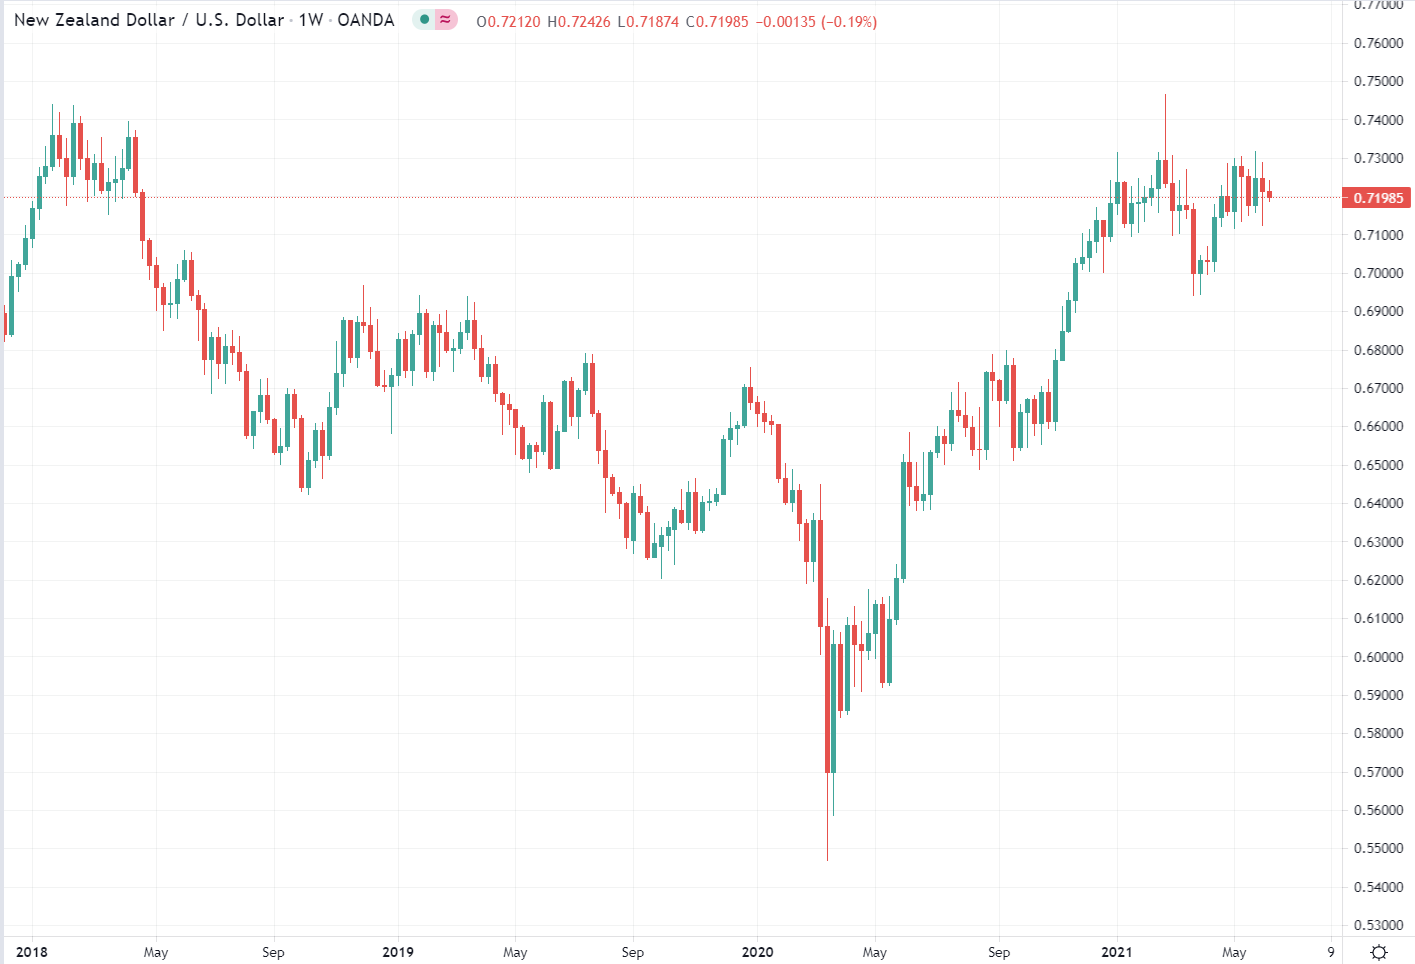 Via analysts at Westpac a quick take on where to for the New Zealand dollar: